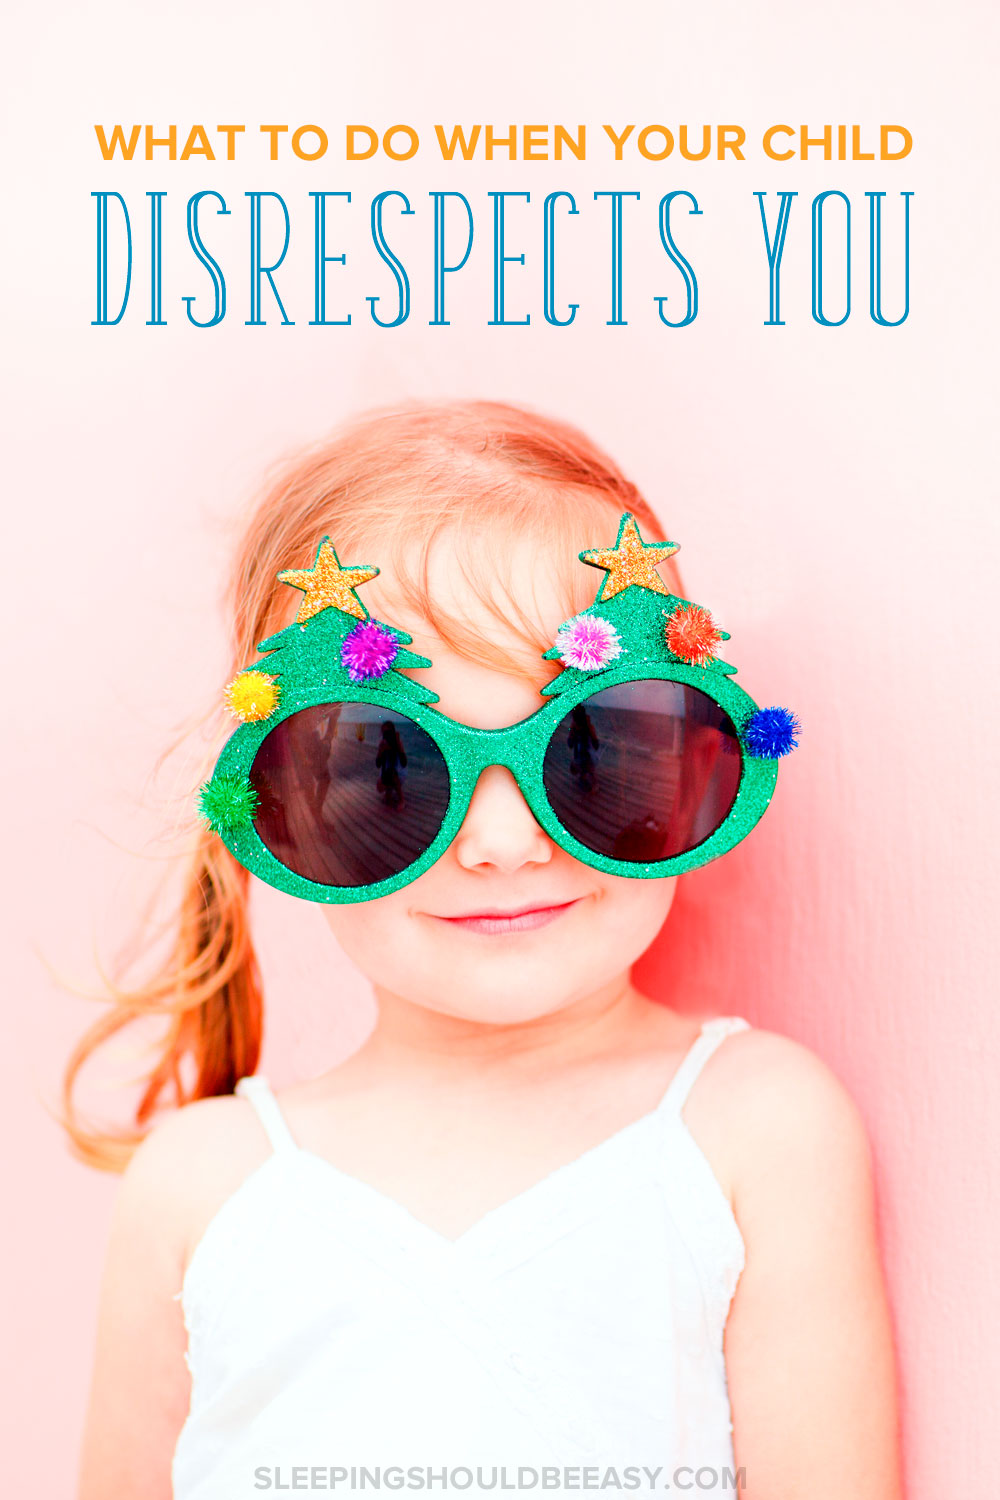 What to do when your child disrespects you